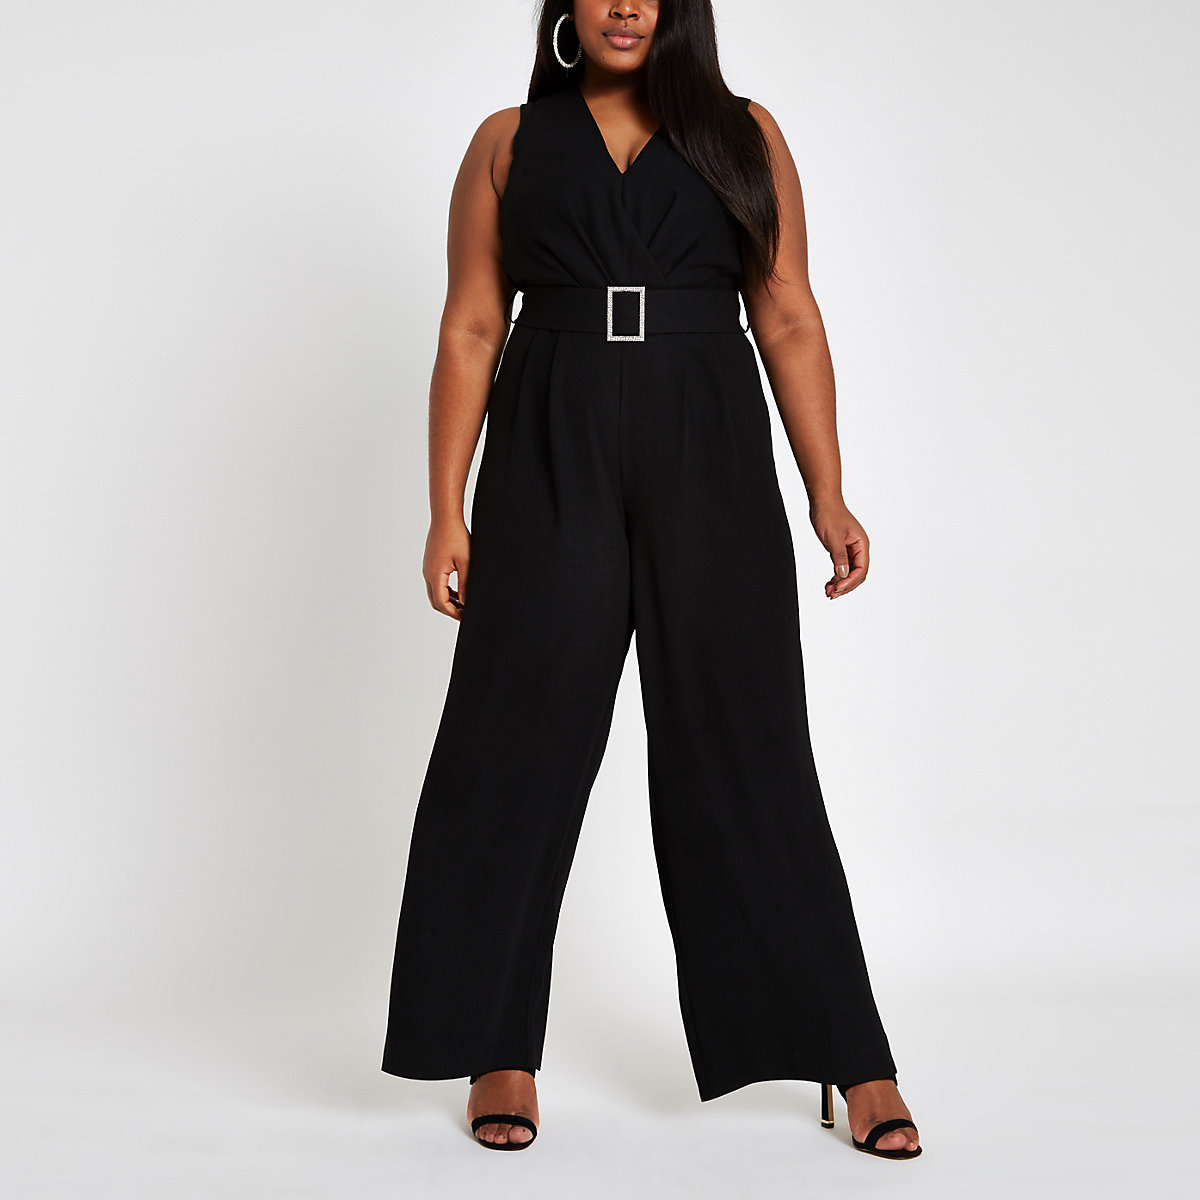 Plus black rhinestone belted wide leg jumpsuit